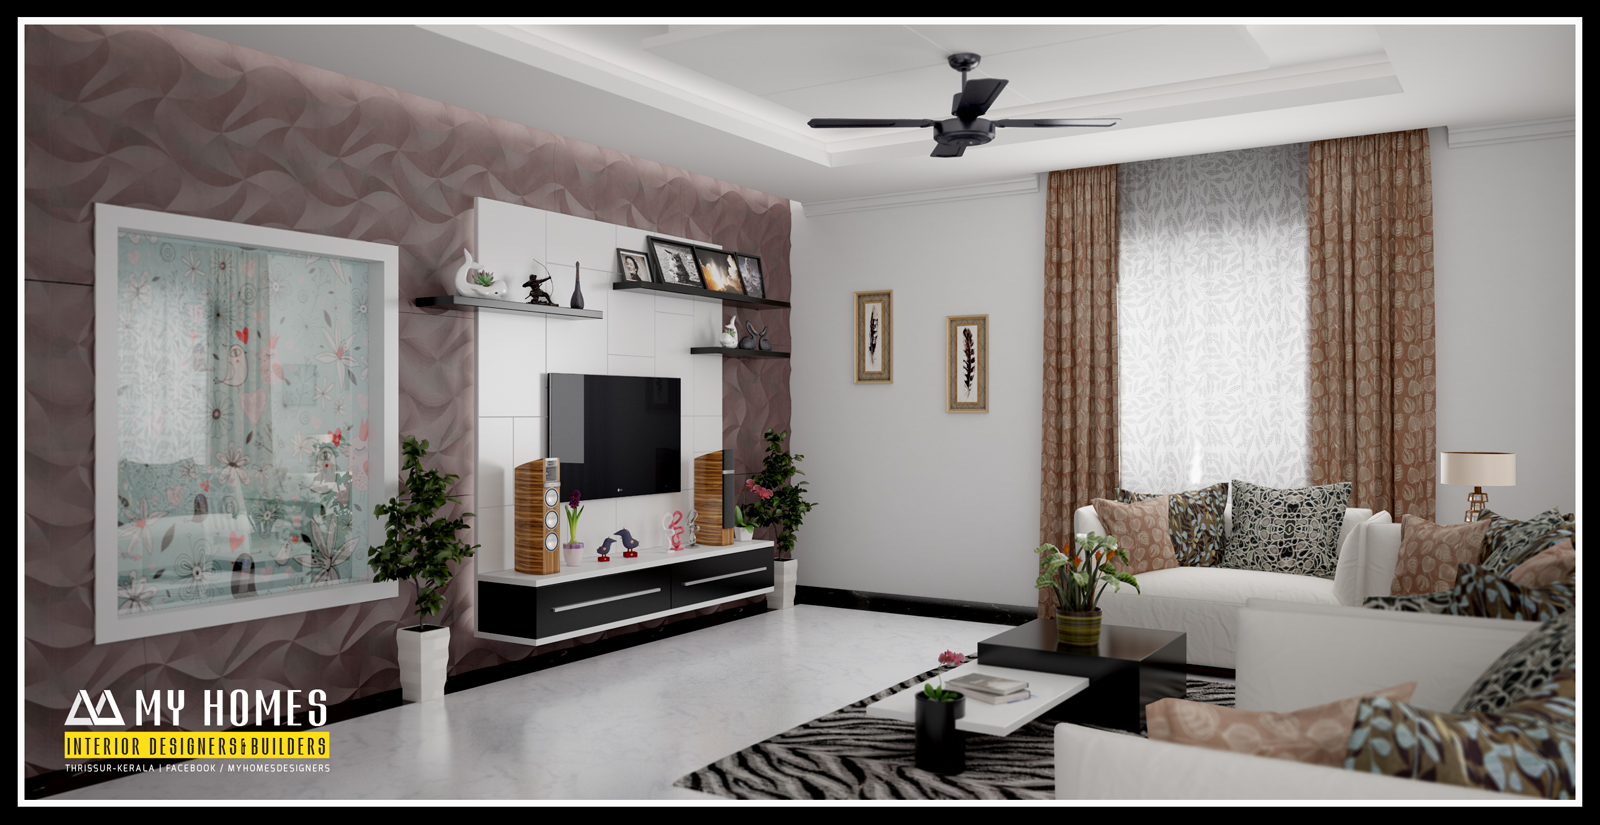 Kerala interior design ideas from designing company thrissur for Interior designs in kerala